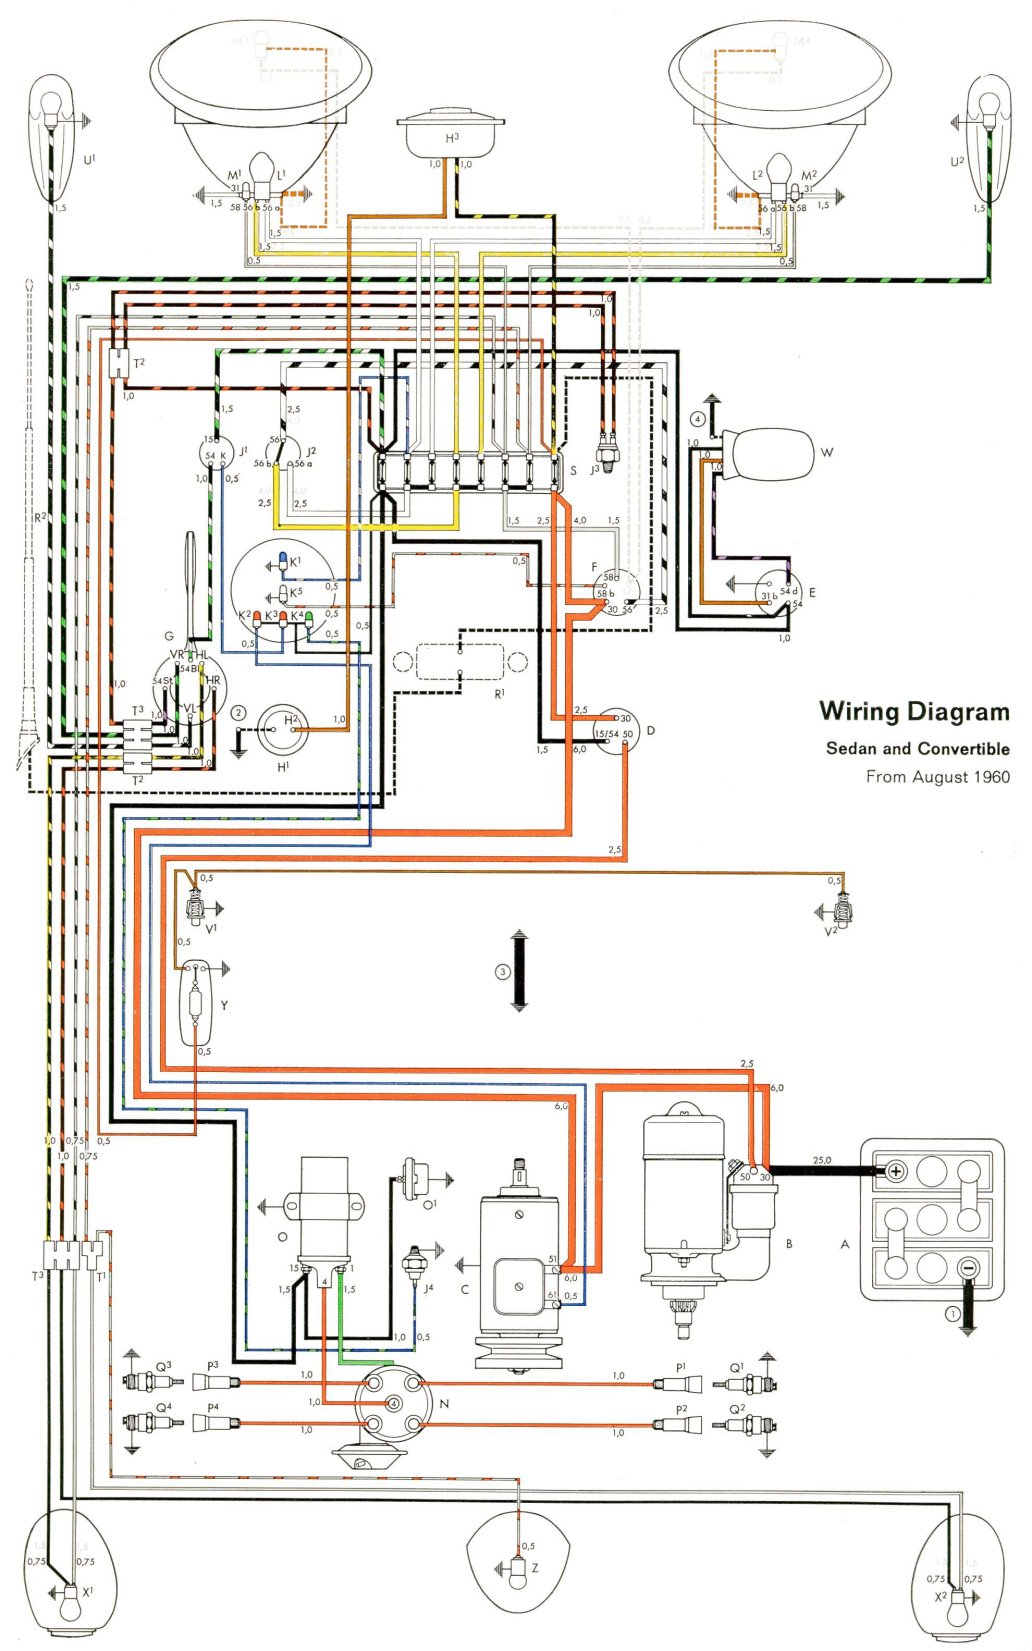 bug_61 1961 beetle wiring diagram thegoldenbug com wiring diagram for 1972 vw beetle at sewacar.co